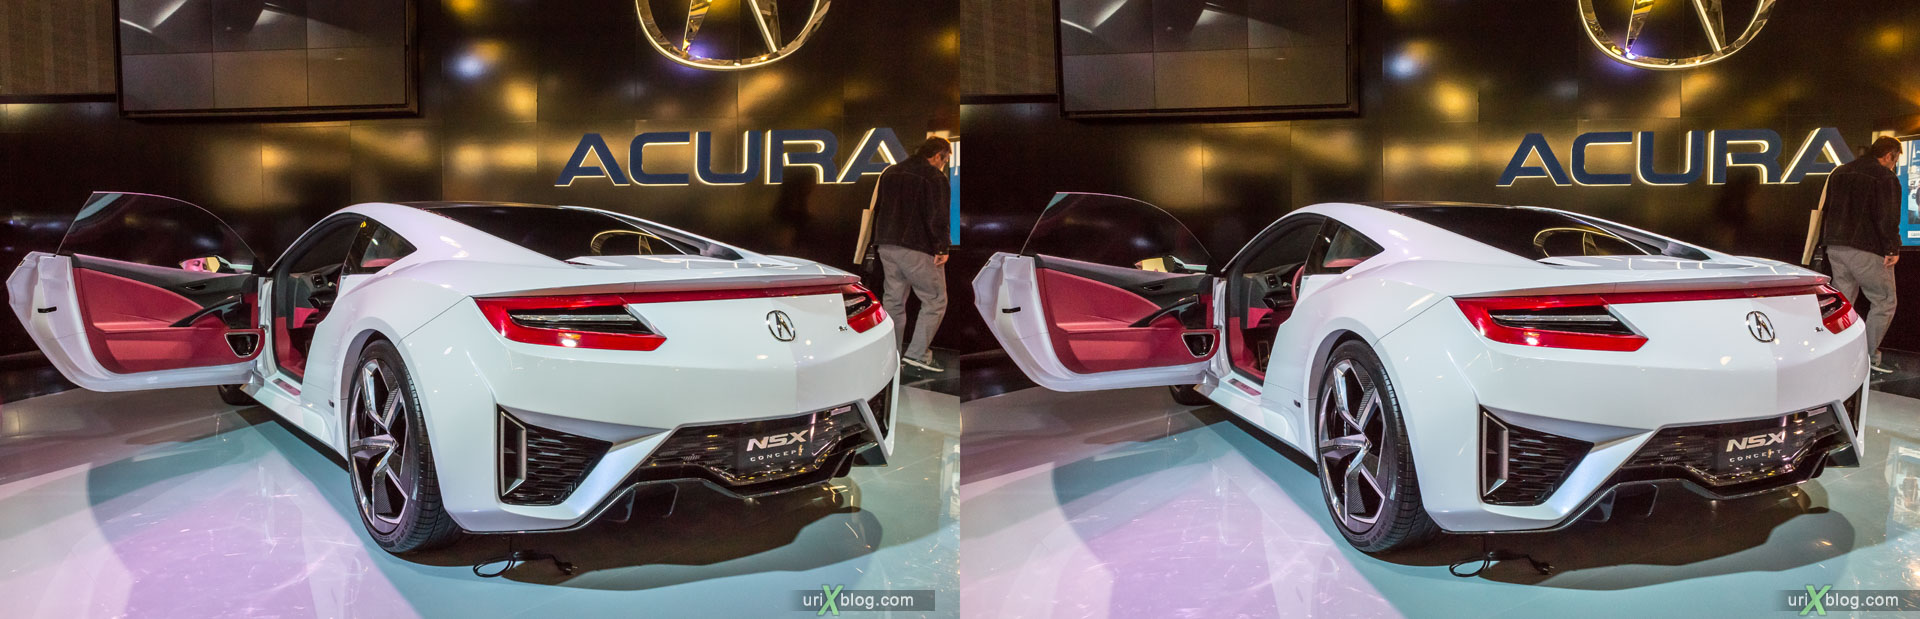 Acura NSX Concept, Moscow International Automobile Salon 2014, MIAS 2014, girls, models, Crocus Expo, Moscow, Russia, 3D, stereo pair, cross-eyed, crossview, cross view stereo pair, stereoscopic, 2014